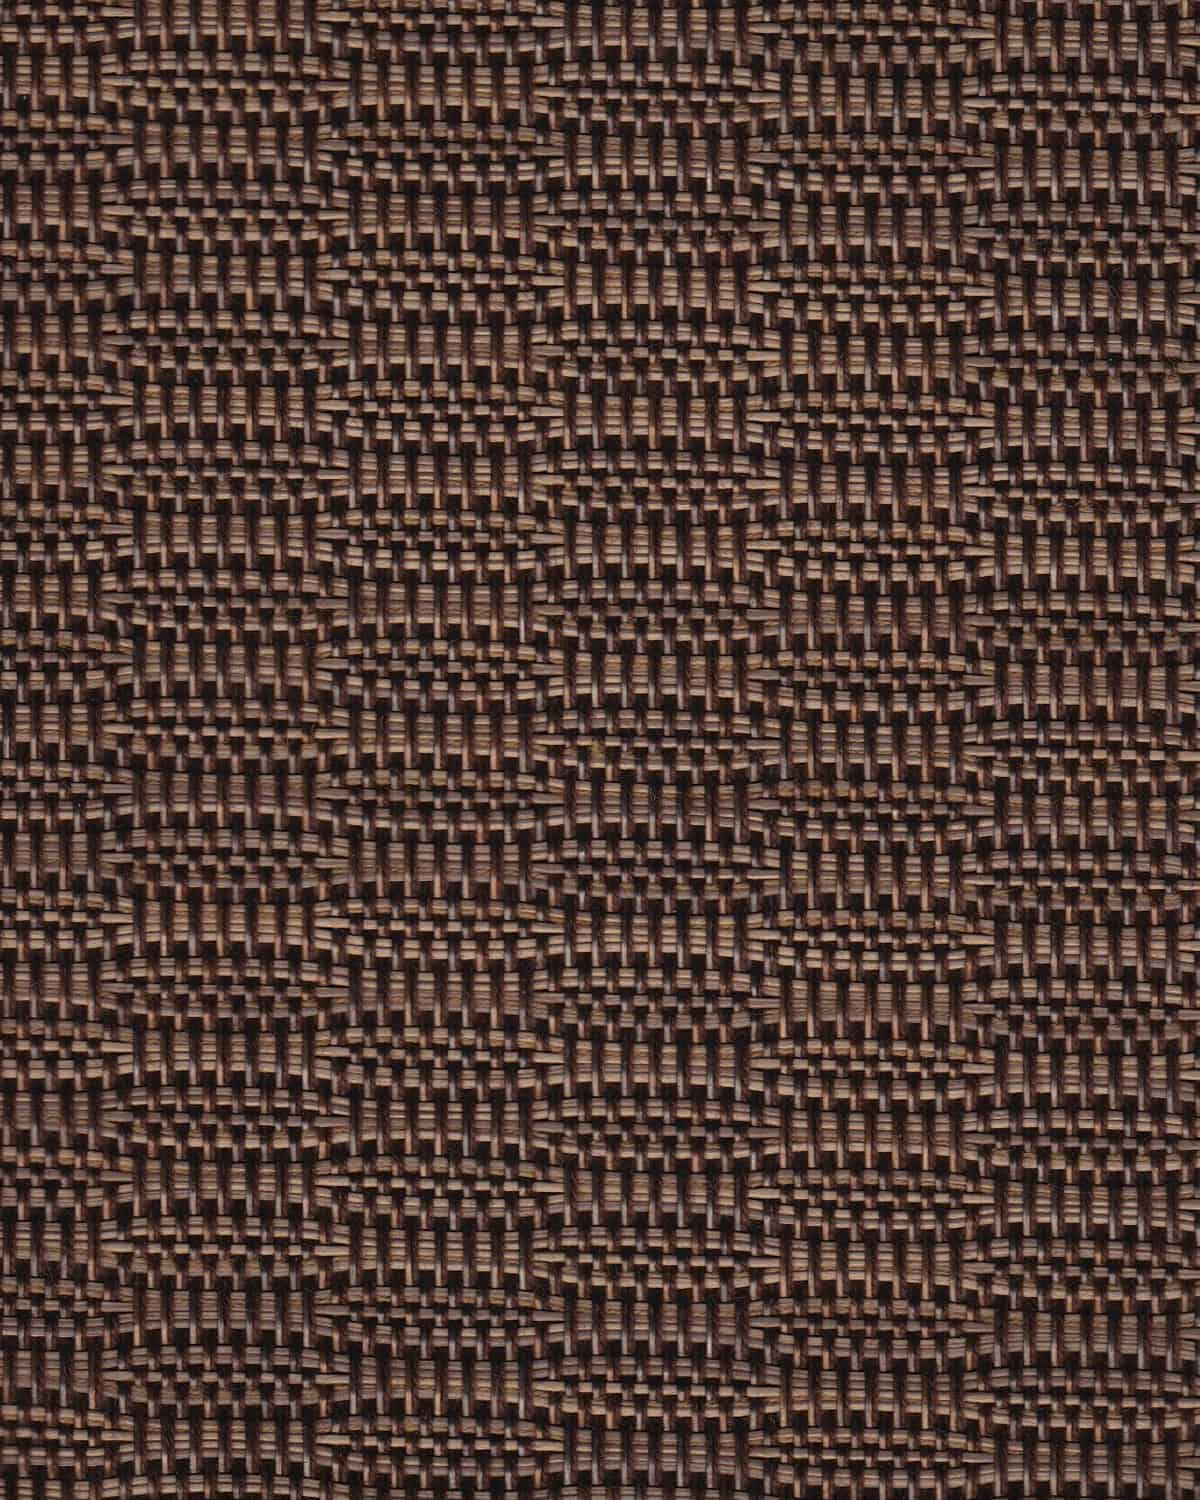 Dark black and brown woven fabric